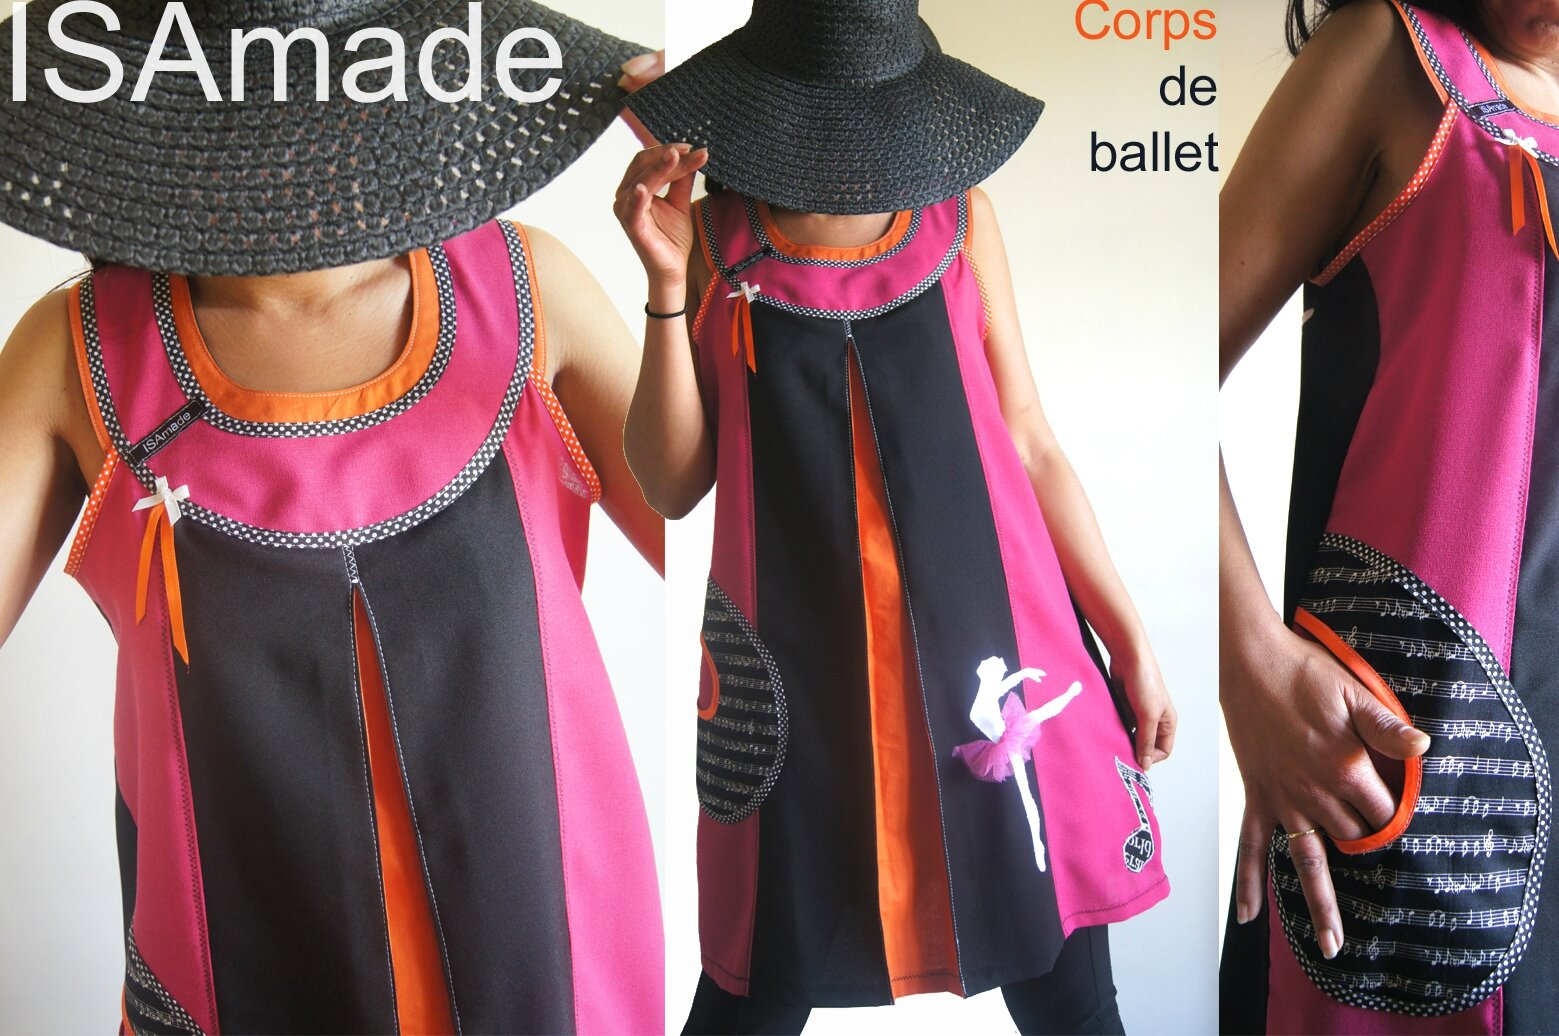 Robe Chasuble Noire/fuchsia orange d'esprit sixties